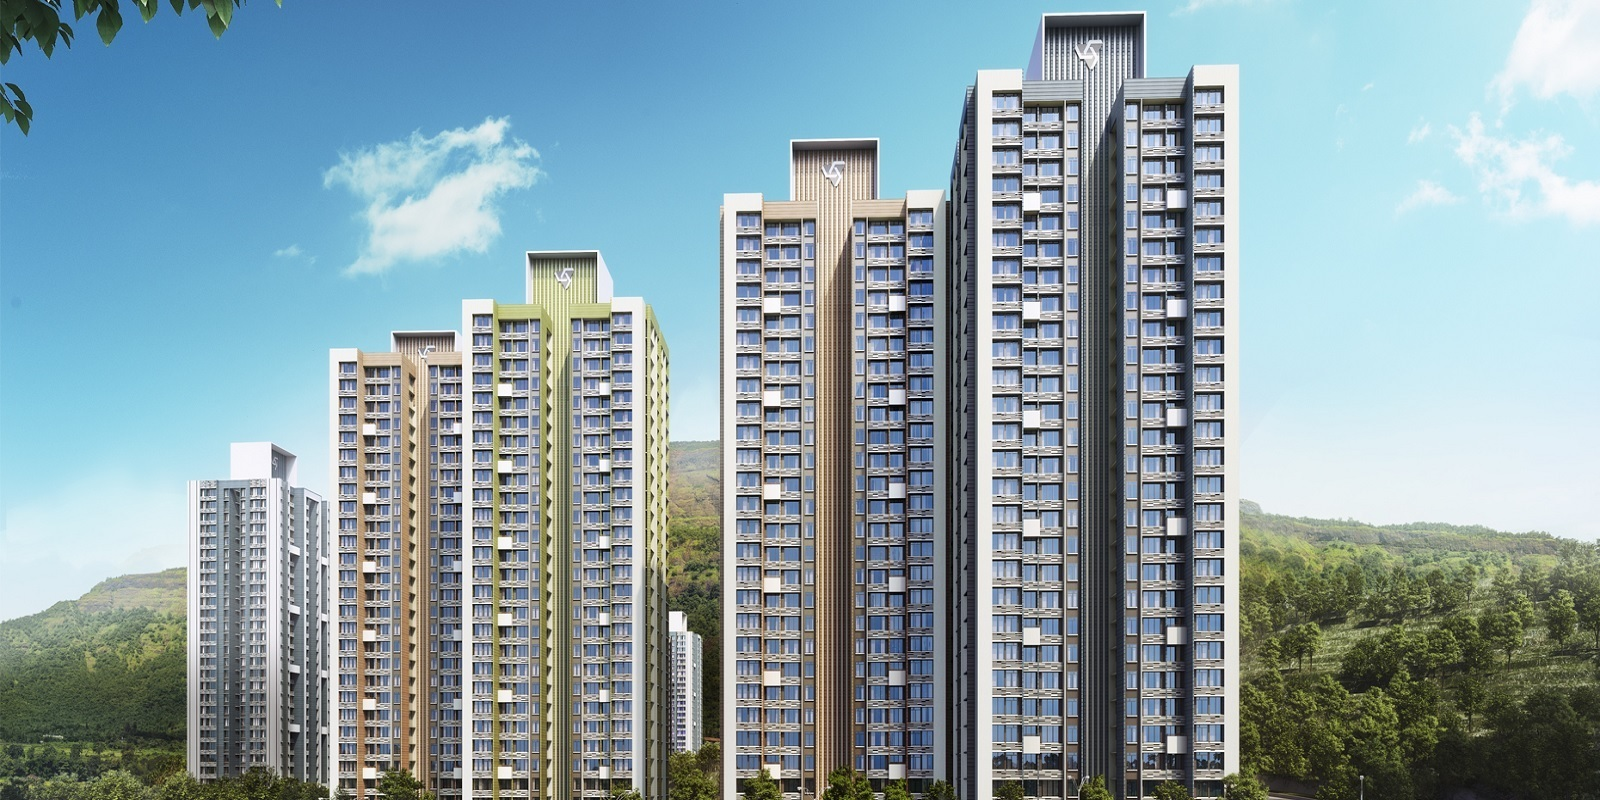 wadhwa wise city south block phase 1 b1 wing a2 project large image2